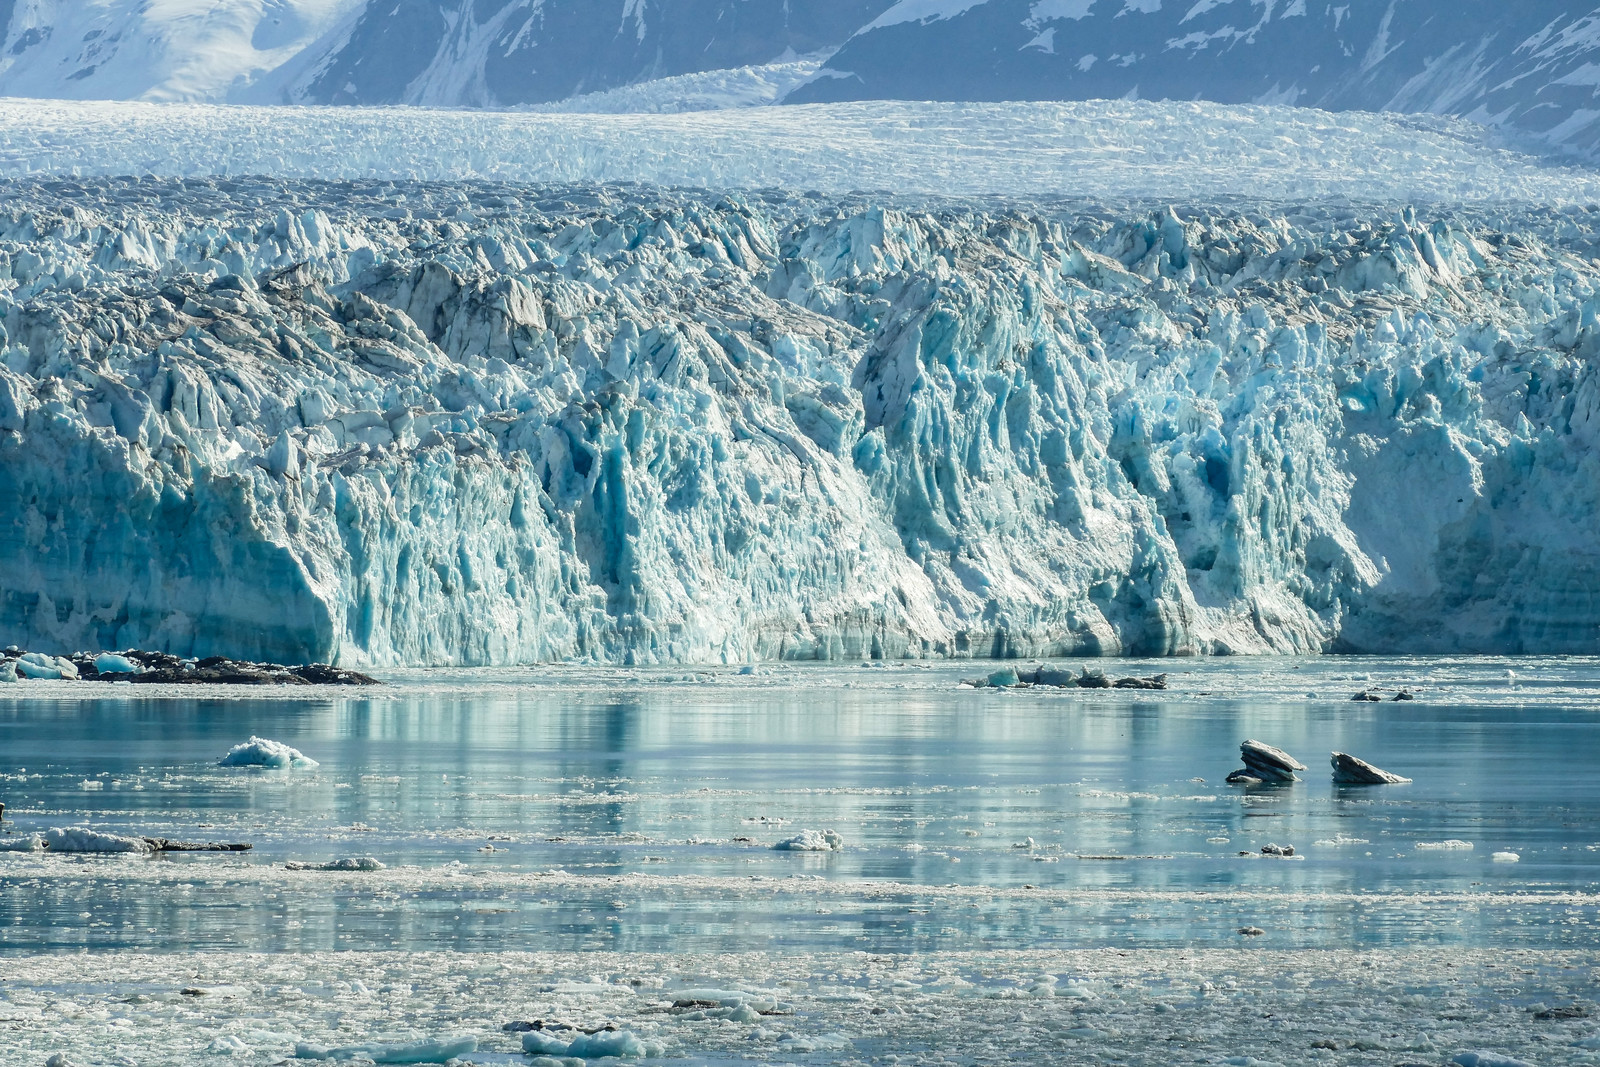 A zoomed in view of a glaciers jagged ice.